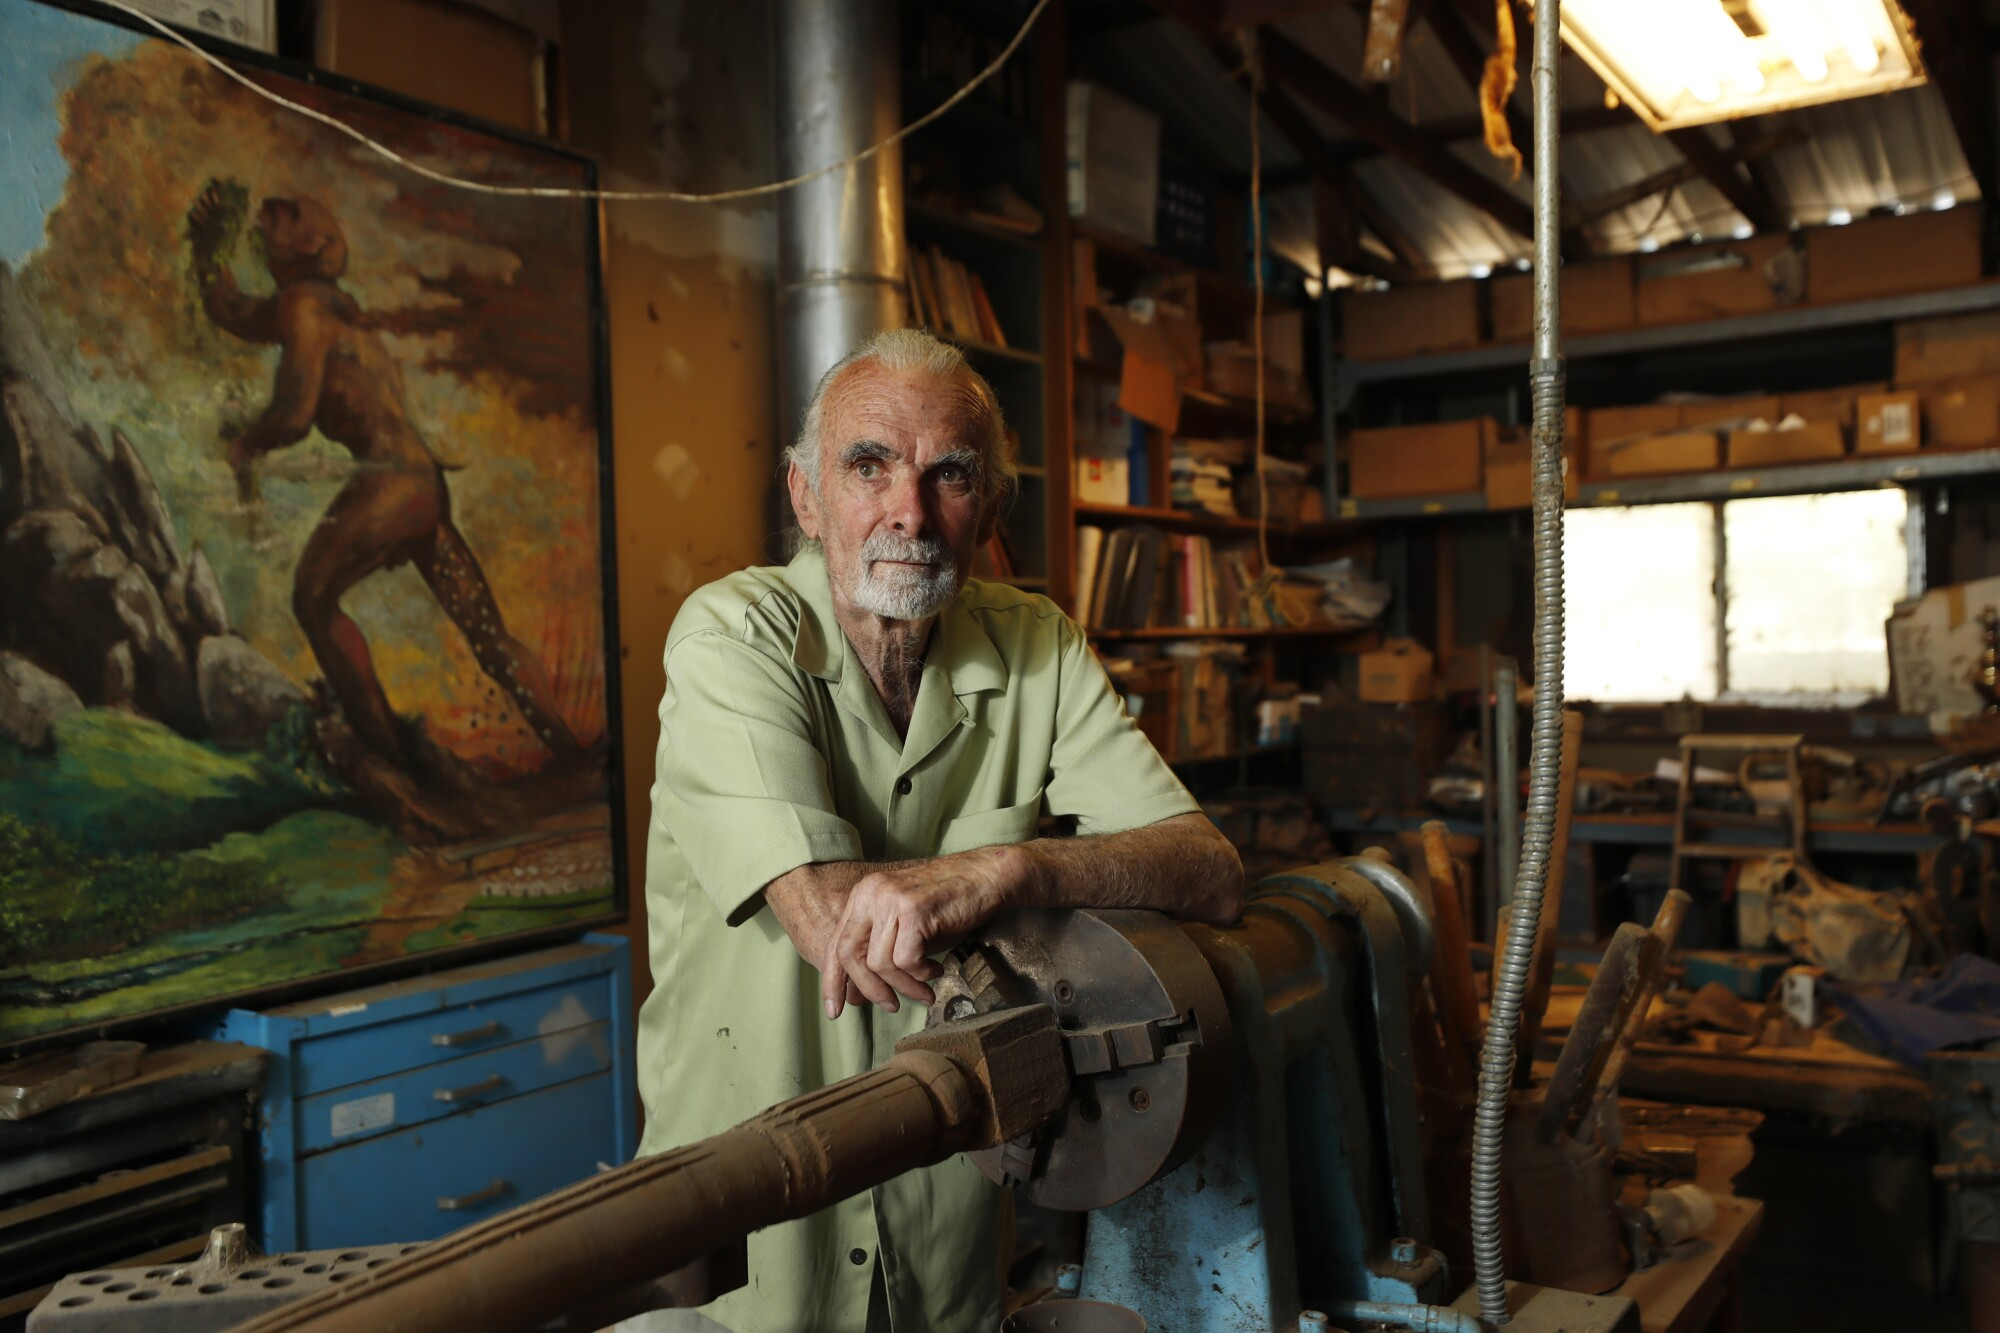 Longtime conservation activist Duncan McFetridge stands in his workshop at his Descanso home on Wednesday, May 12, 2021.